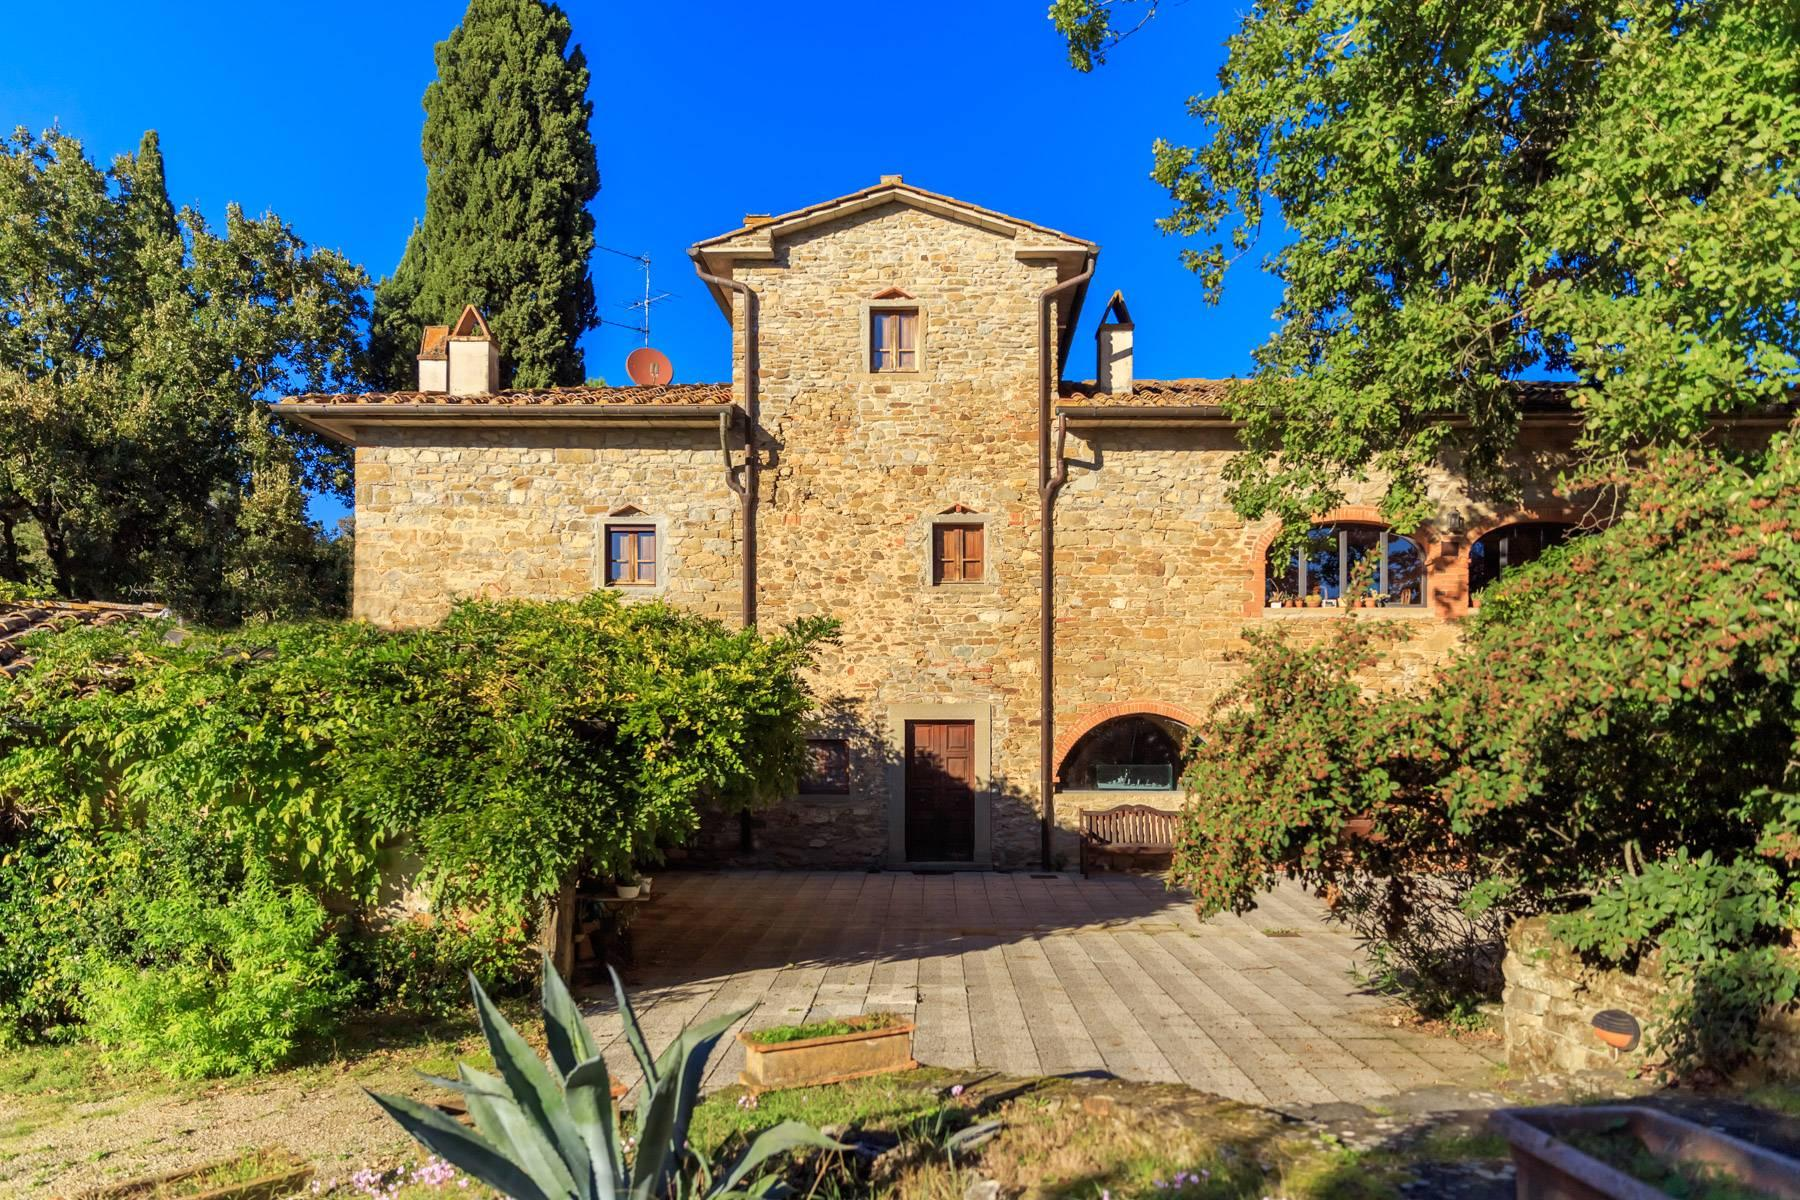 Historic villa in the Tuscan countryside - 1